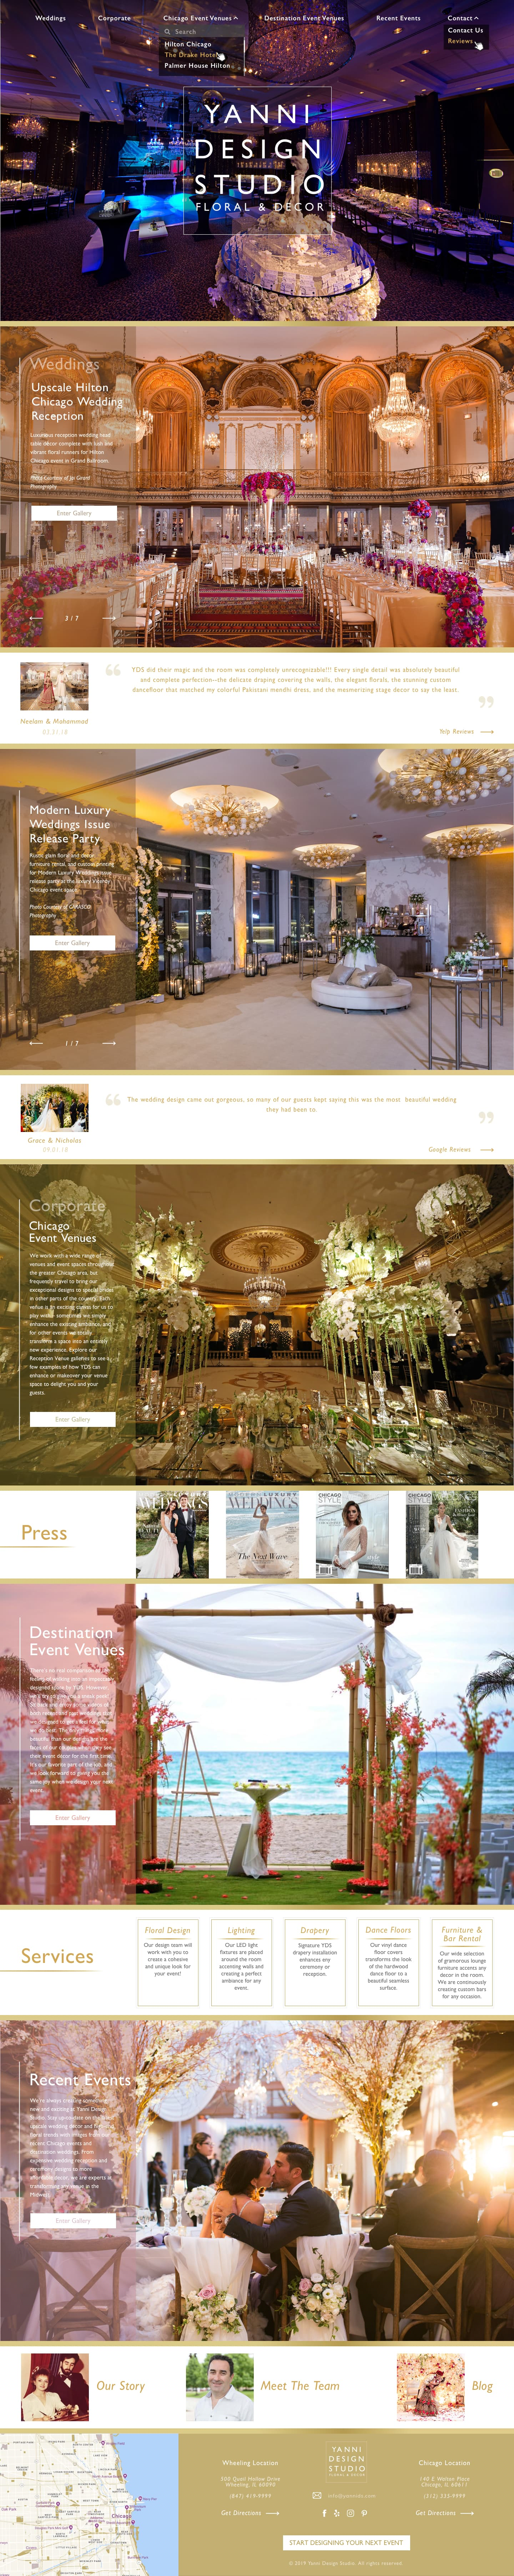 Wordpress Home Page - Created by ITPROBE for Yanni Design Studio